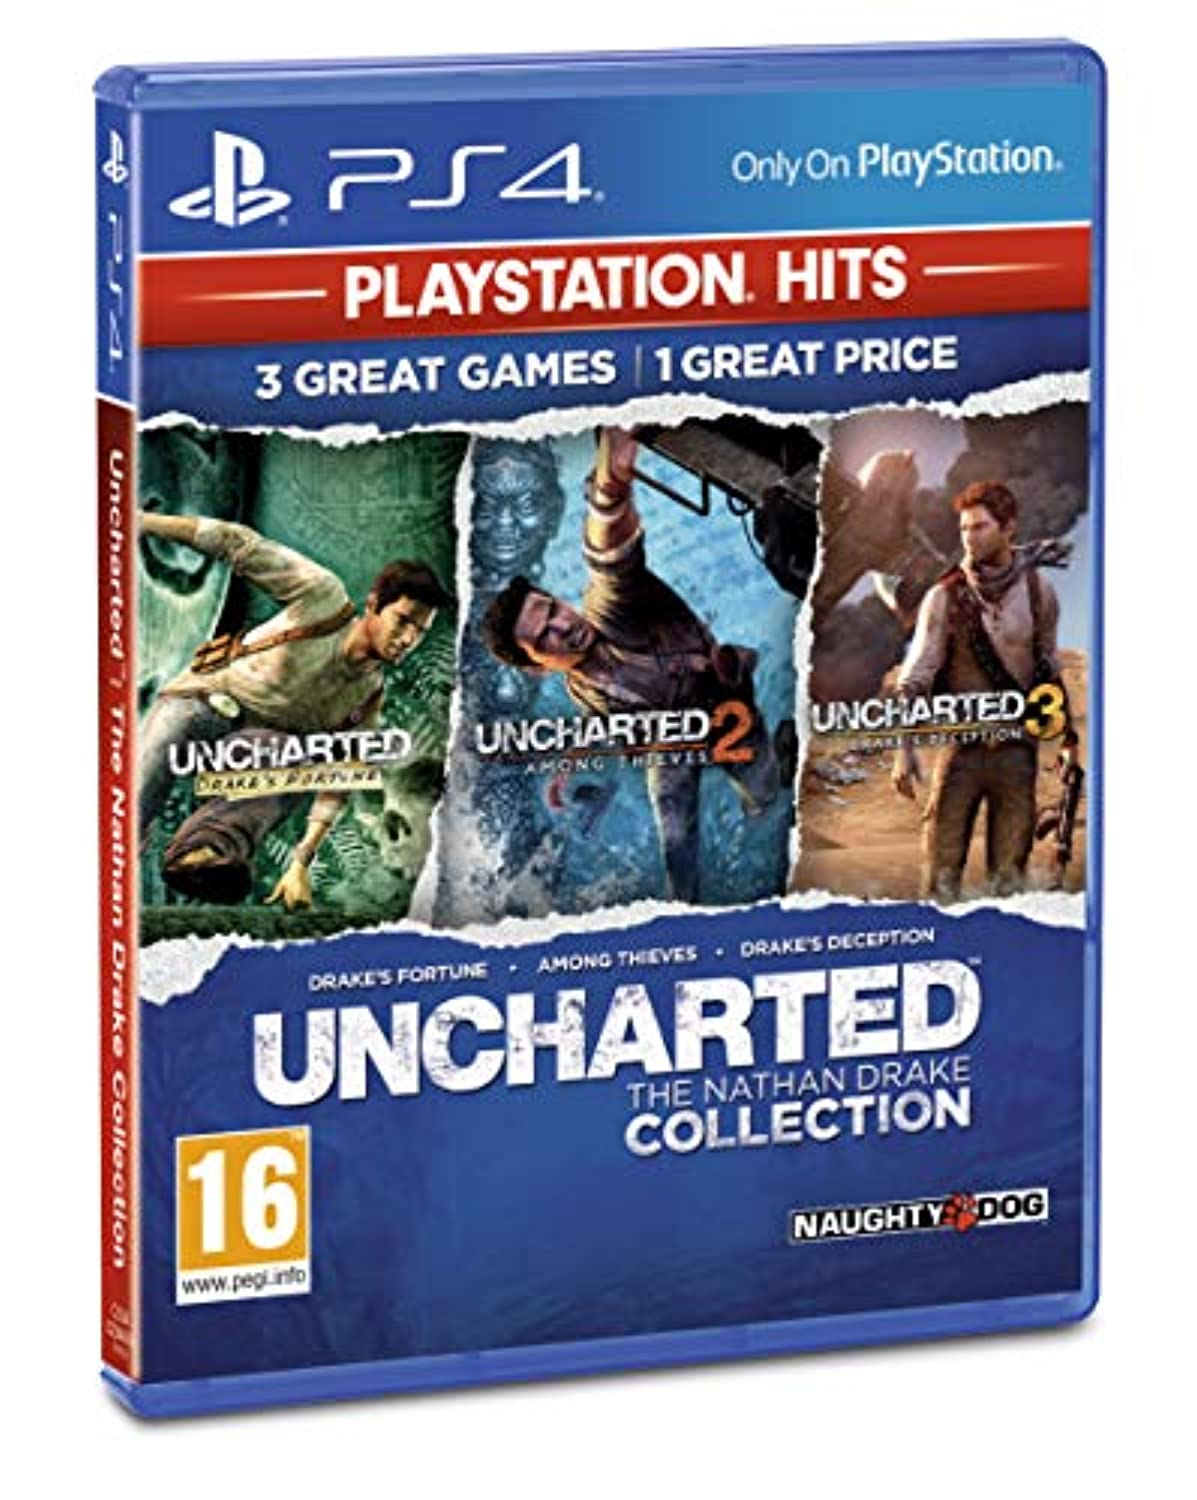 Classier: Buy Sony Uncharted Collection PlayStation Hits (PS4)